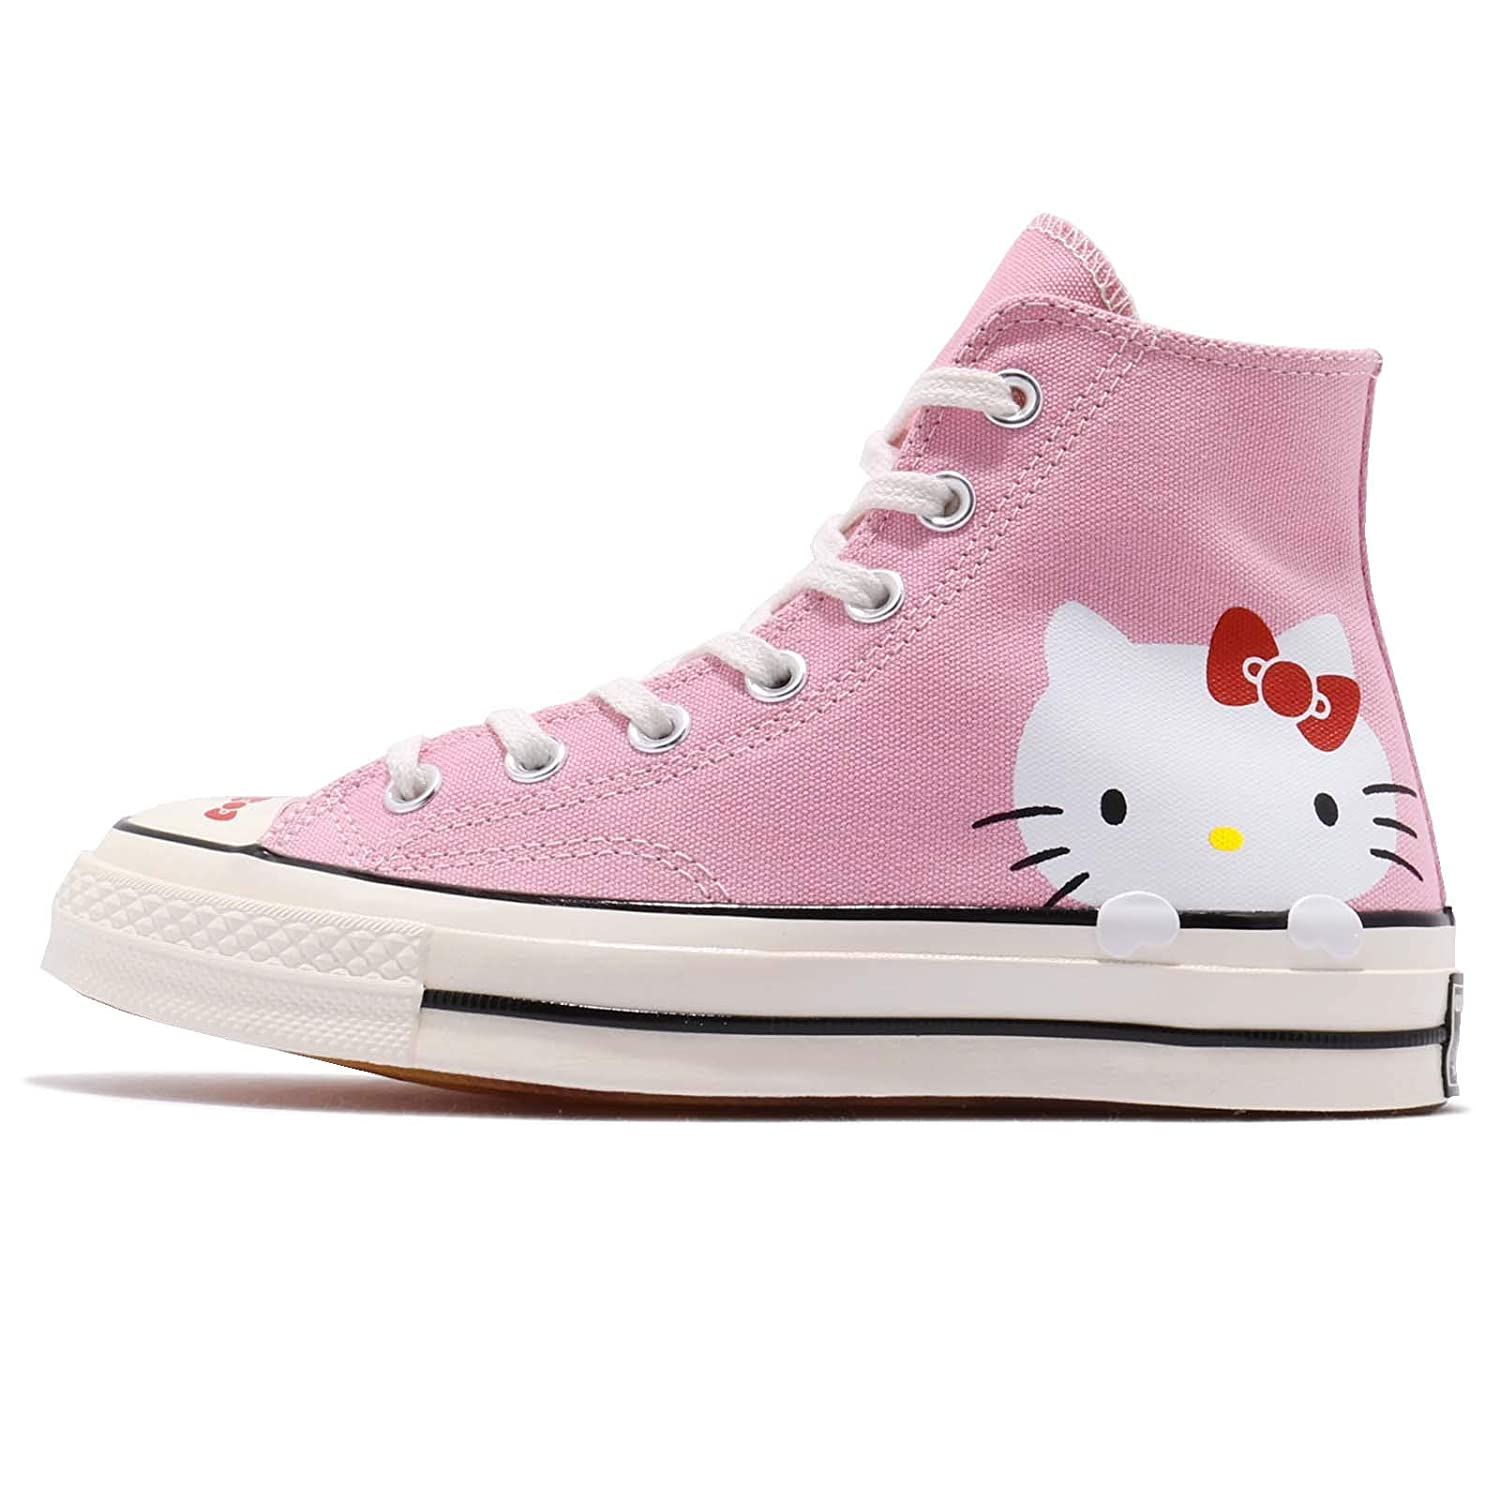 d4774c82b Clothing, Shoes & Accessories Athletic Shoes Converse x Hello Kitty All  Star Hi Chuck Taylor 70 Pink Womens ...